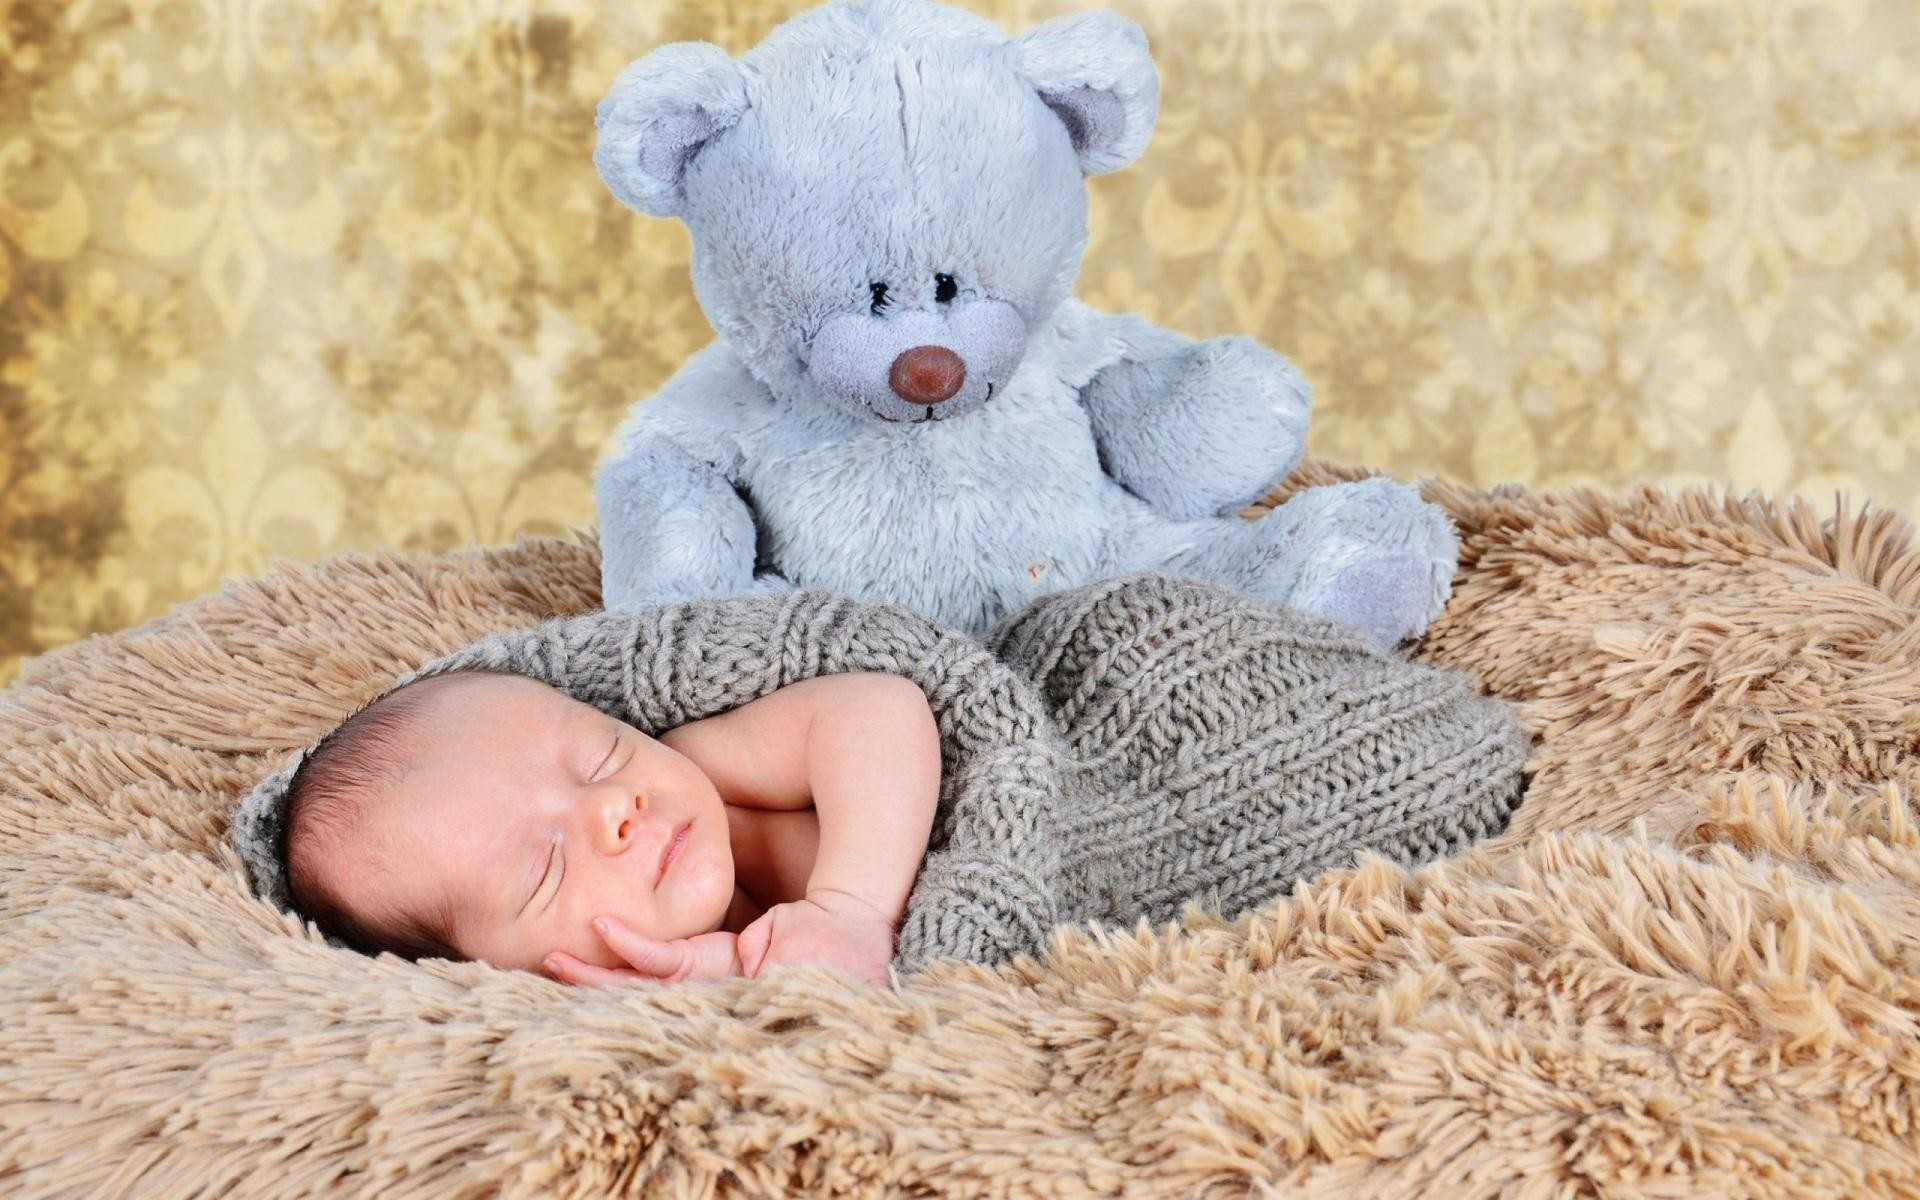 Res: 1920x1200, good night teddy bear wallpapers #1066682. Resolation: 1920x1080 File Size:  130 KB